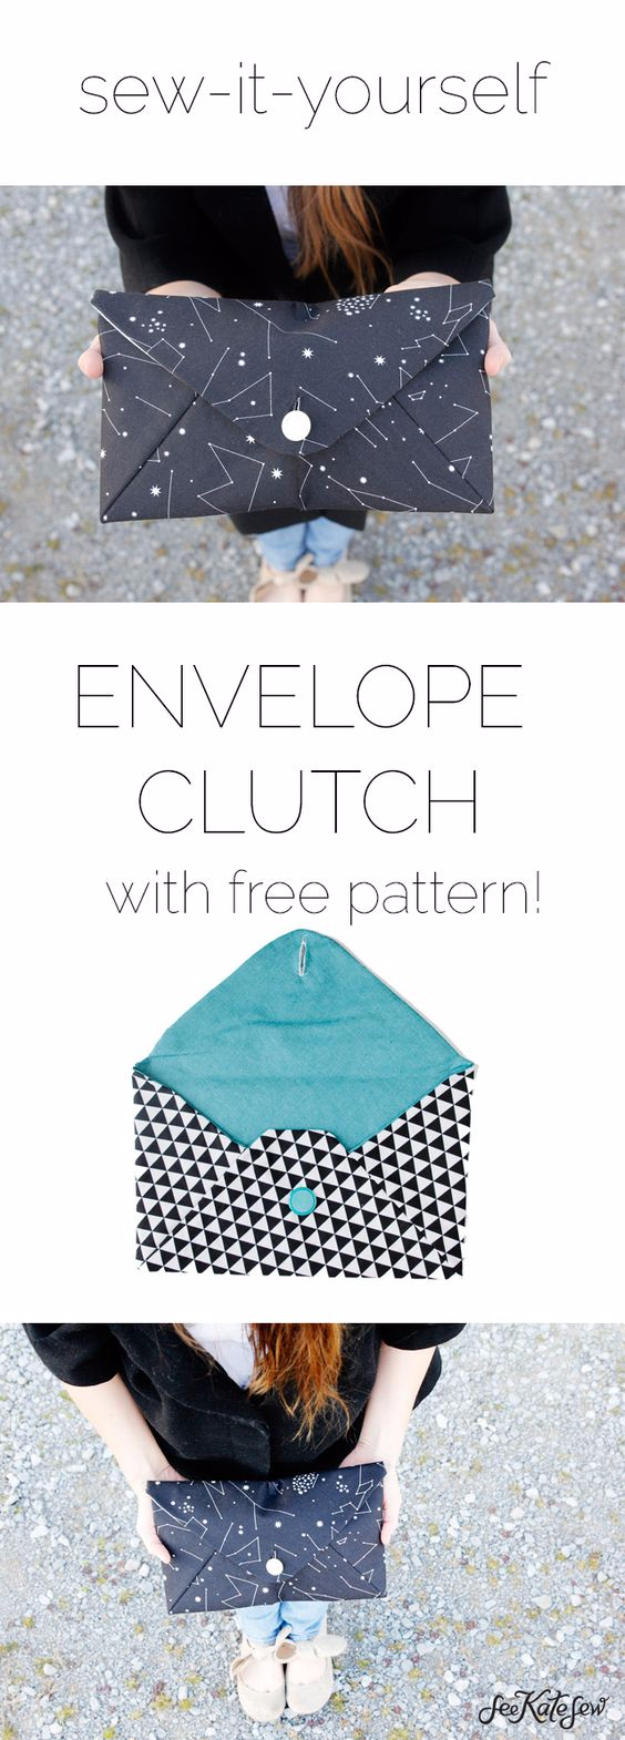 DIY Purses and Handbags - Envelope Clutch - Homemade Projects to Decorate and Make Purses - Add Paint, Glitter, Buttons and Bling To Your Hand Bags and Purse With These Easy Step by Step Tutorials - Boho, Modern, and Cool Fashion Ideas for Women and Teens #purses #diyclothes #handbags